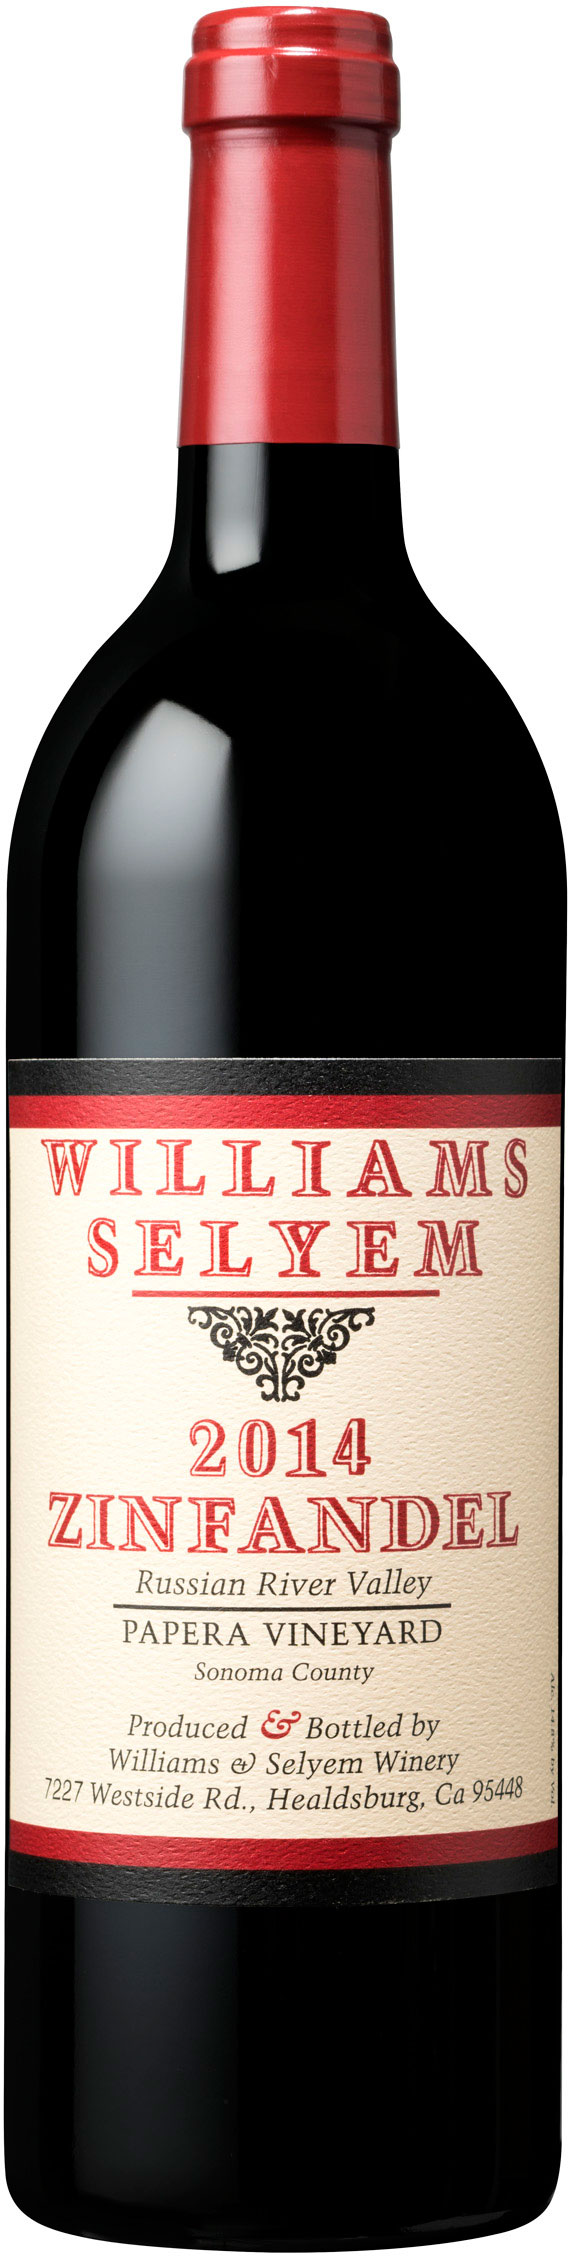 Williams Selyem - Papera Vineyard Zinfandel Russian River Valley 2014 12x 75cl Bottles